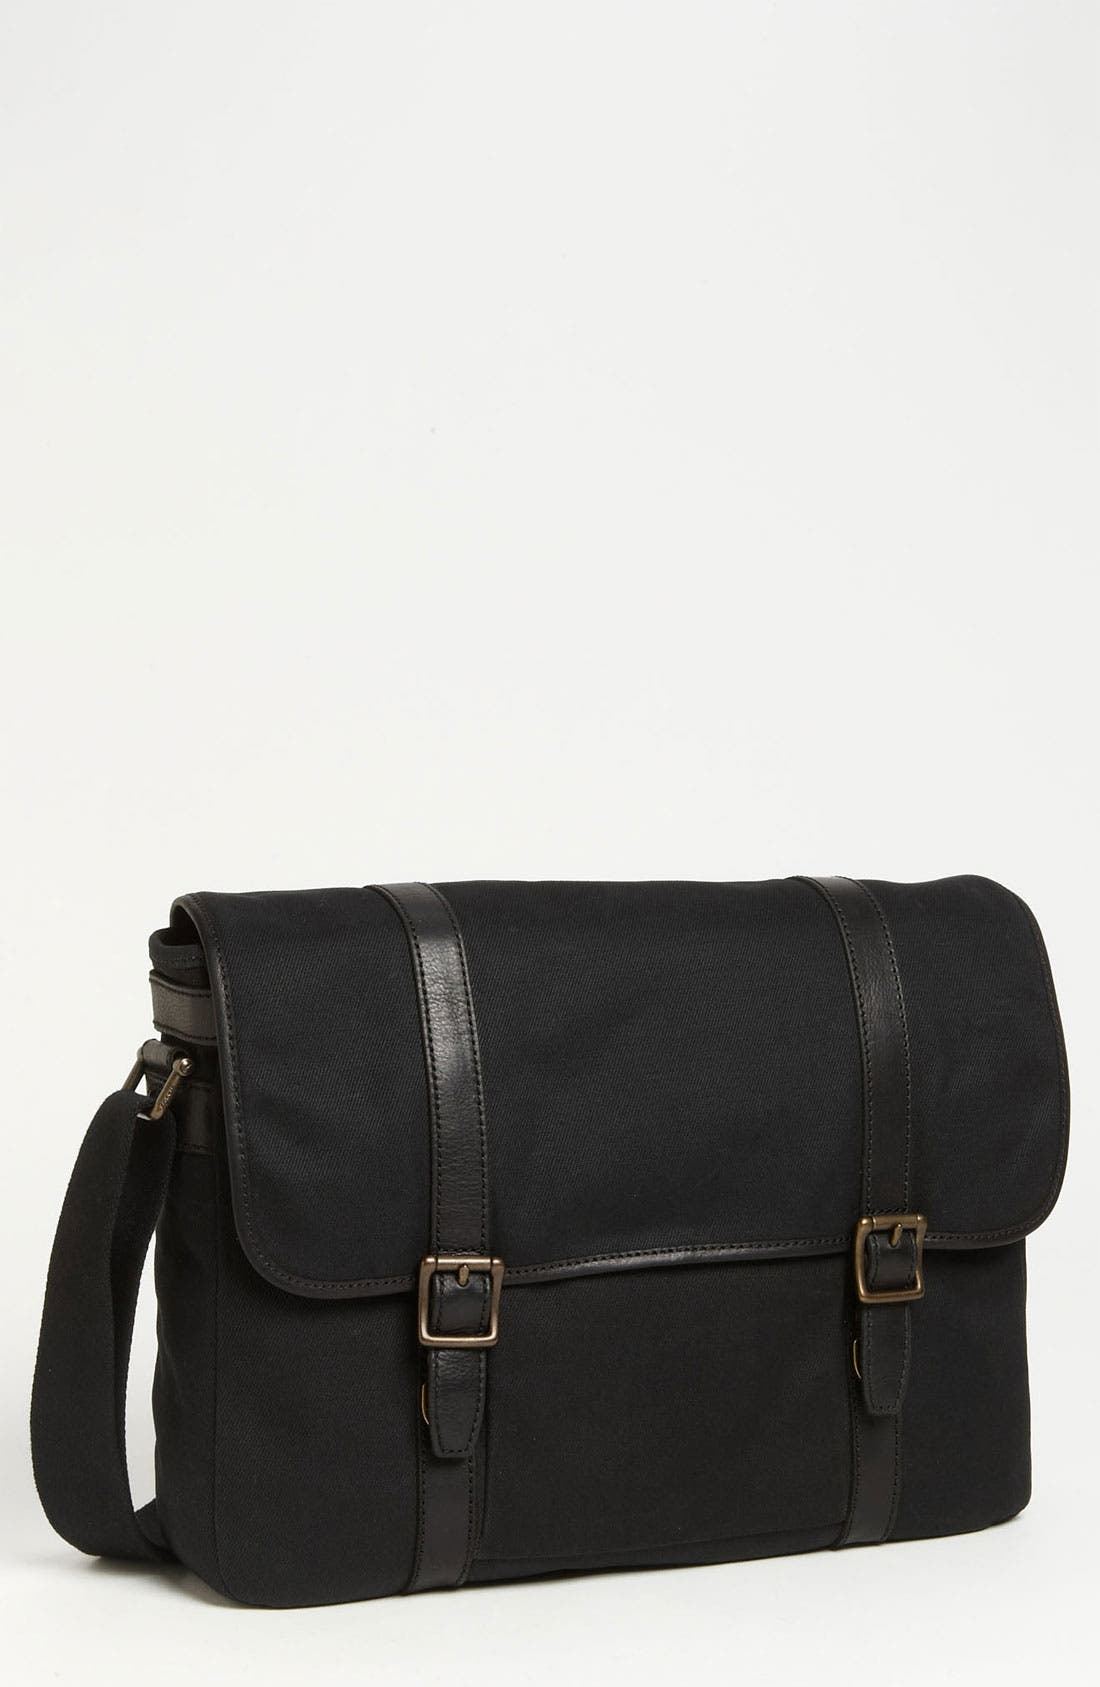 Main Image - Fossil 'Estate' East/West Messenger Bag